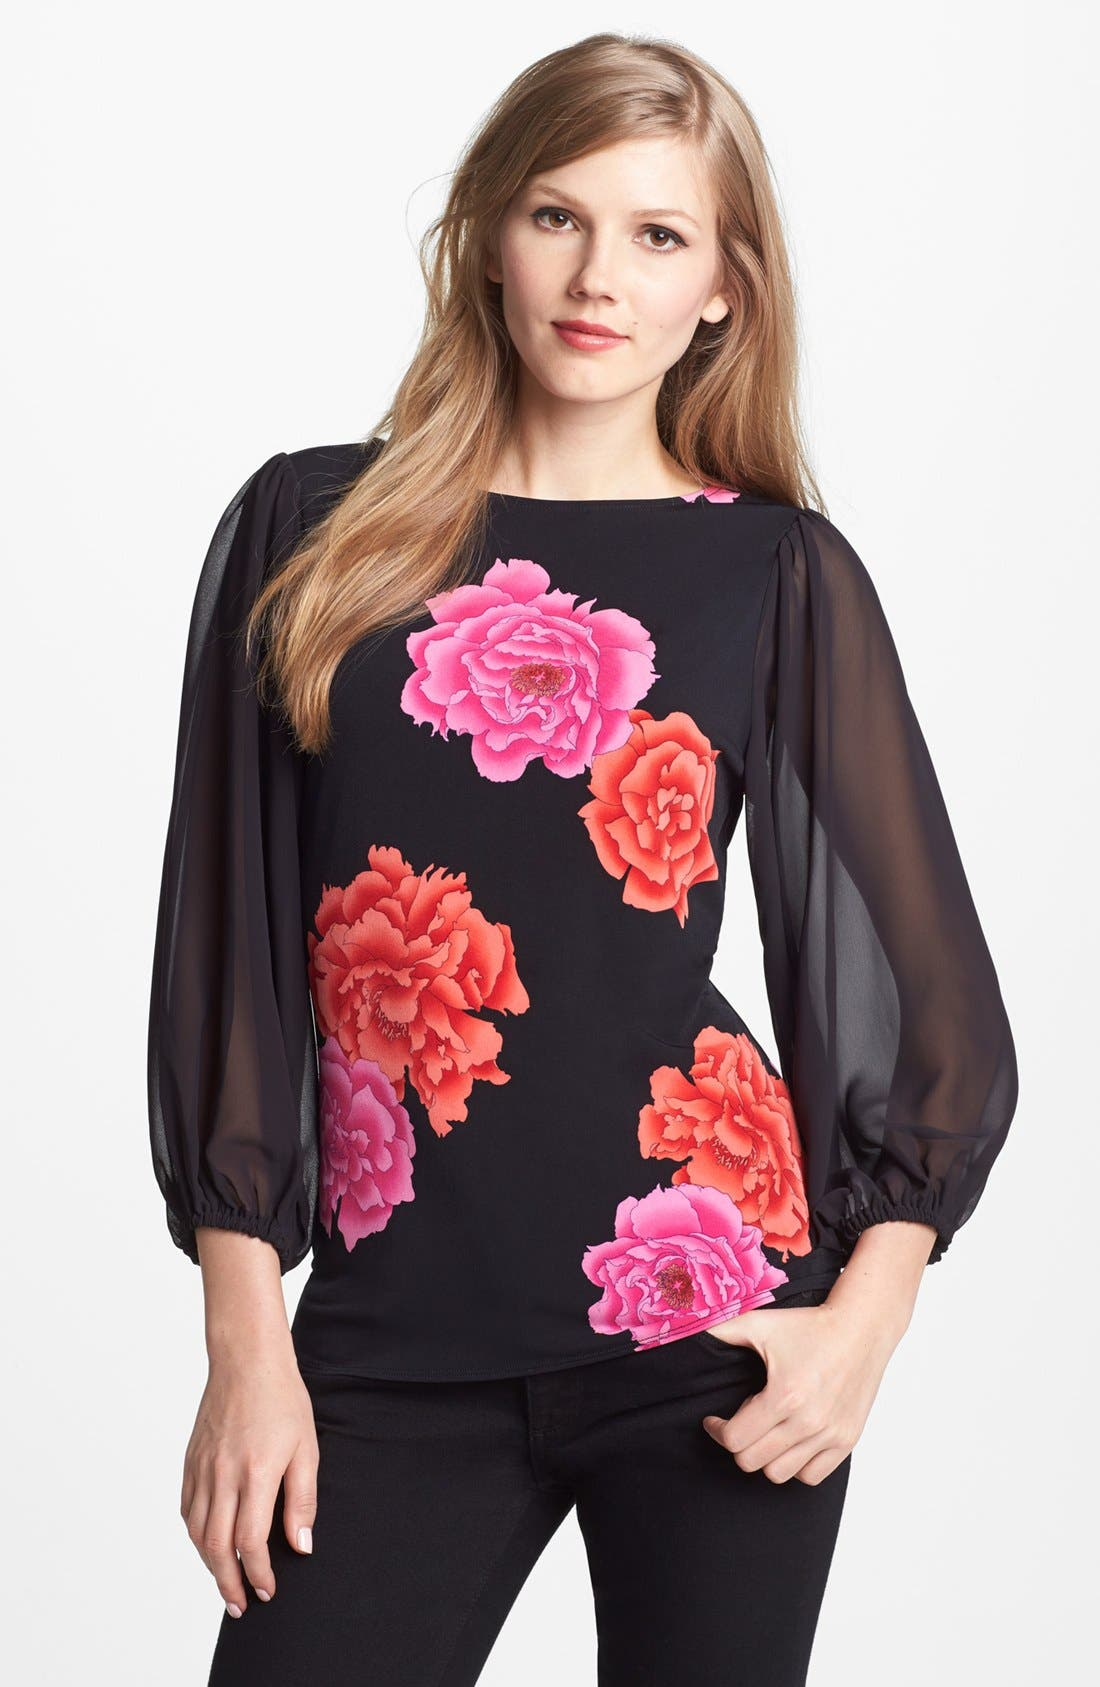 Alternate Image 1 Selected - Vince Camuto 'Peonies' Chiffon Sleeve Top